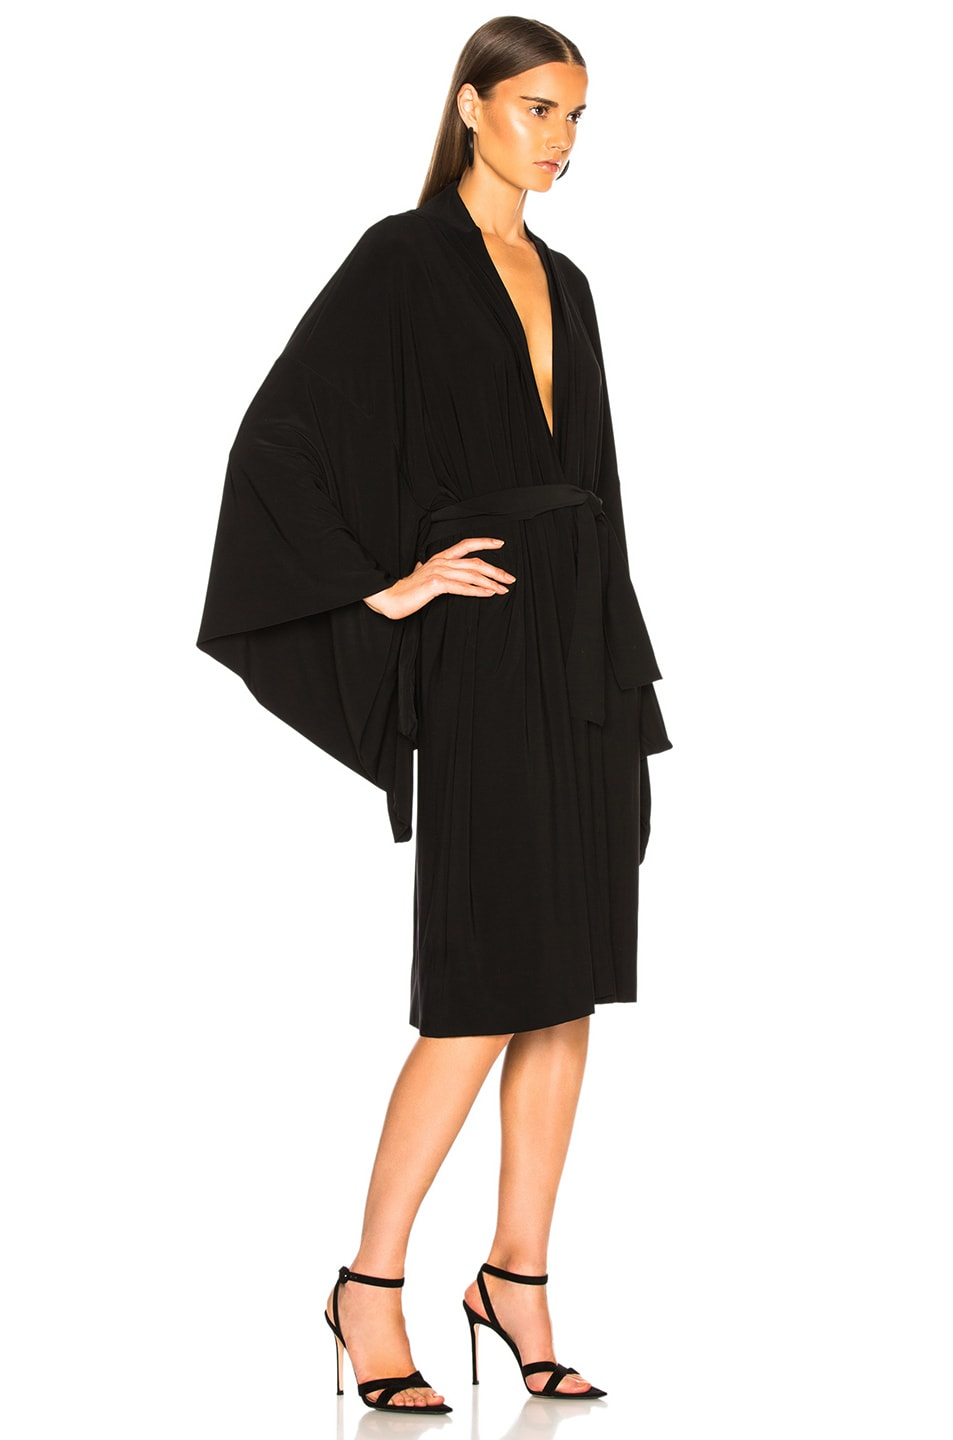 Image 2 of Norma Kamali for FWRD Midcalf Wrap Dress in Black